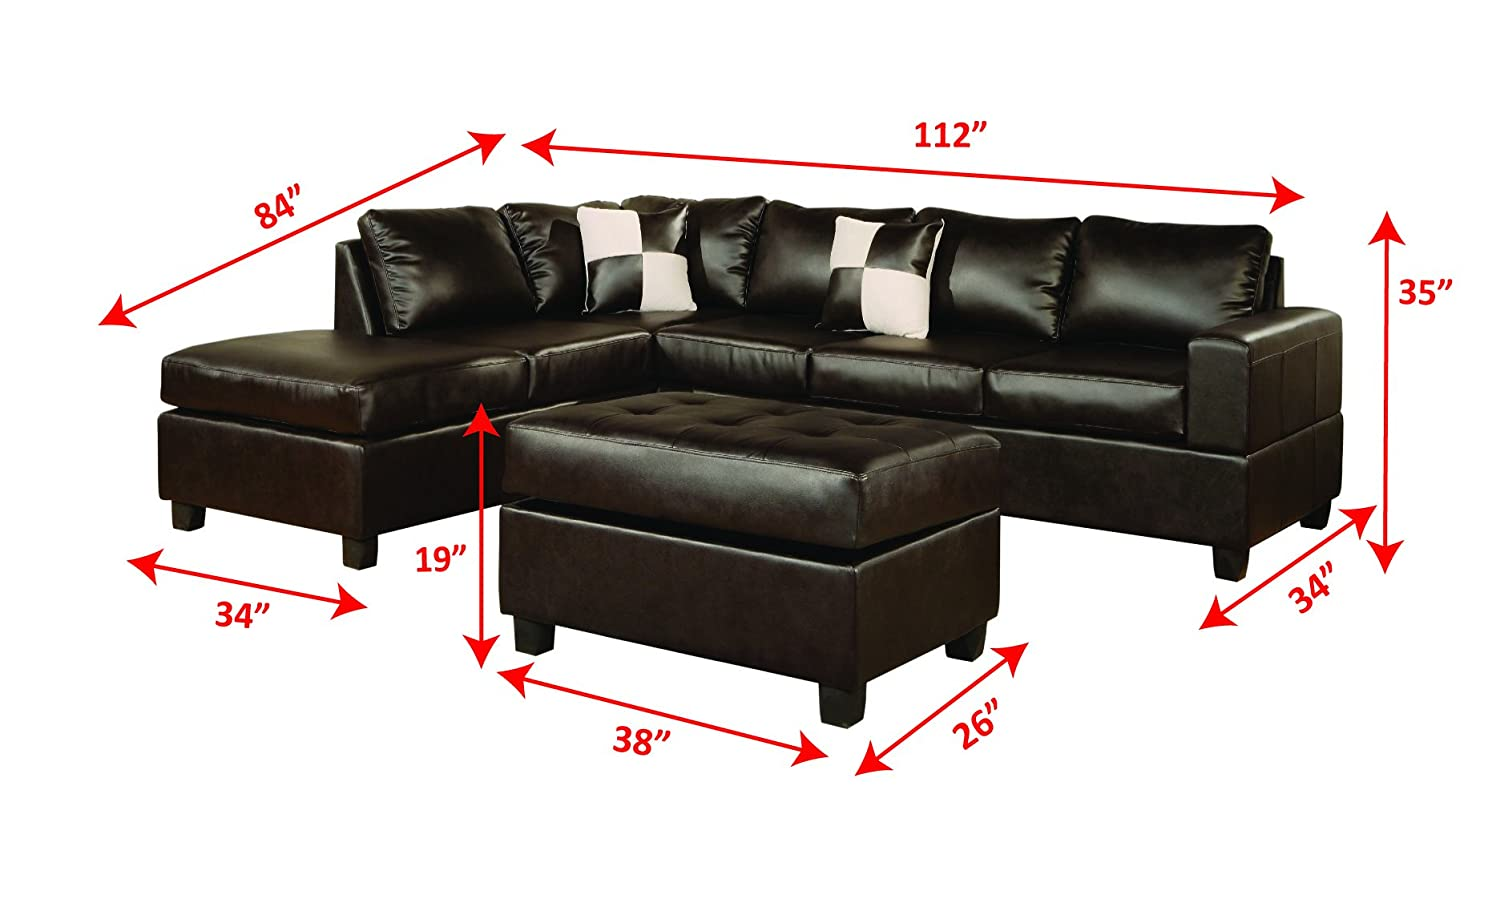 Amazon.com: Bobkona Soft-Touch Reversible Bonded Leather Match 3-Piece  Sectional Sofa Set, Espresso: Kitchen & Dining